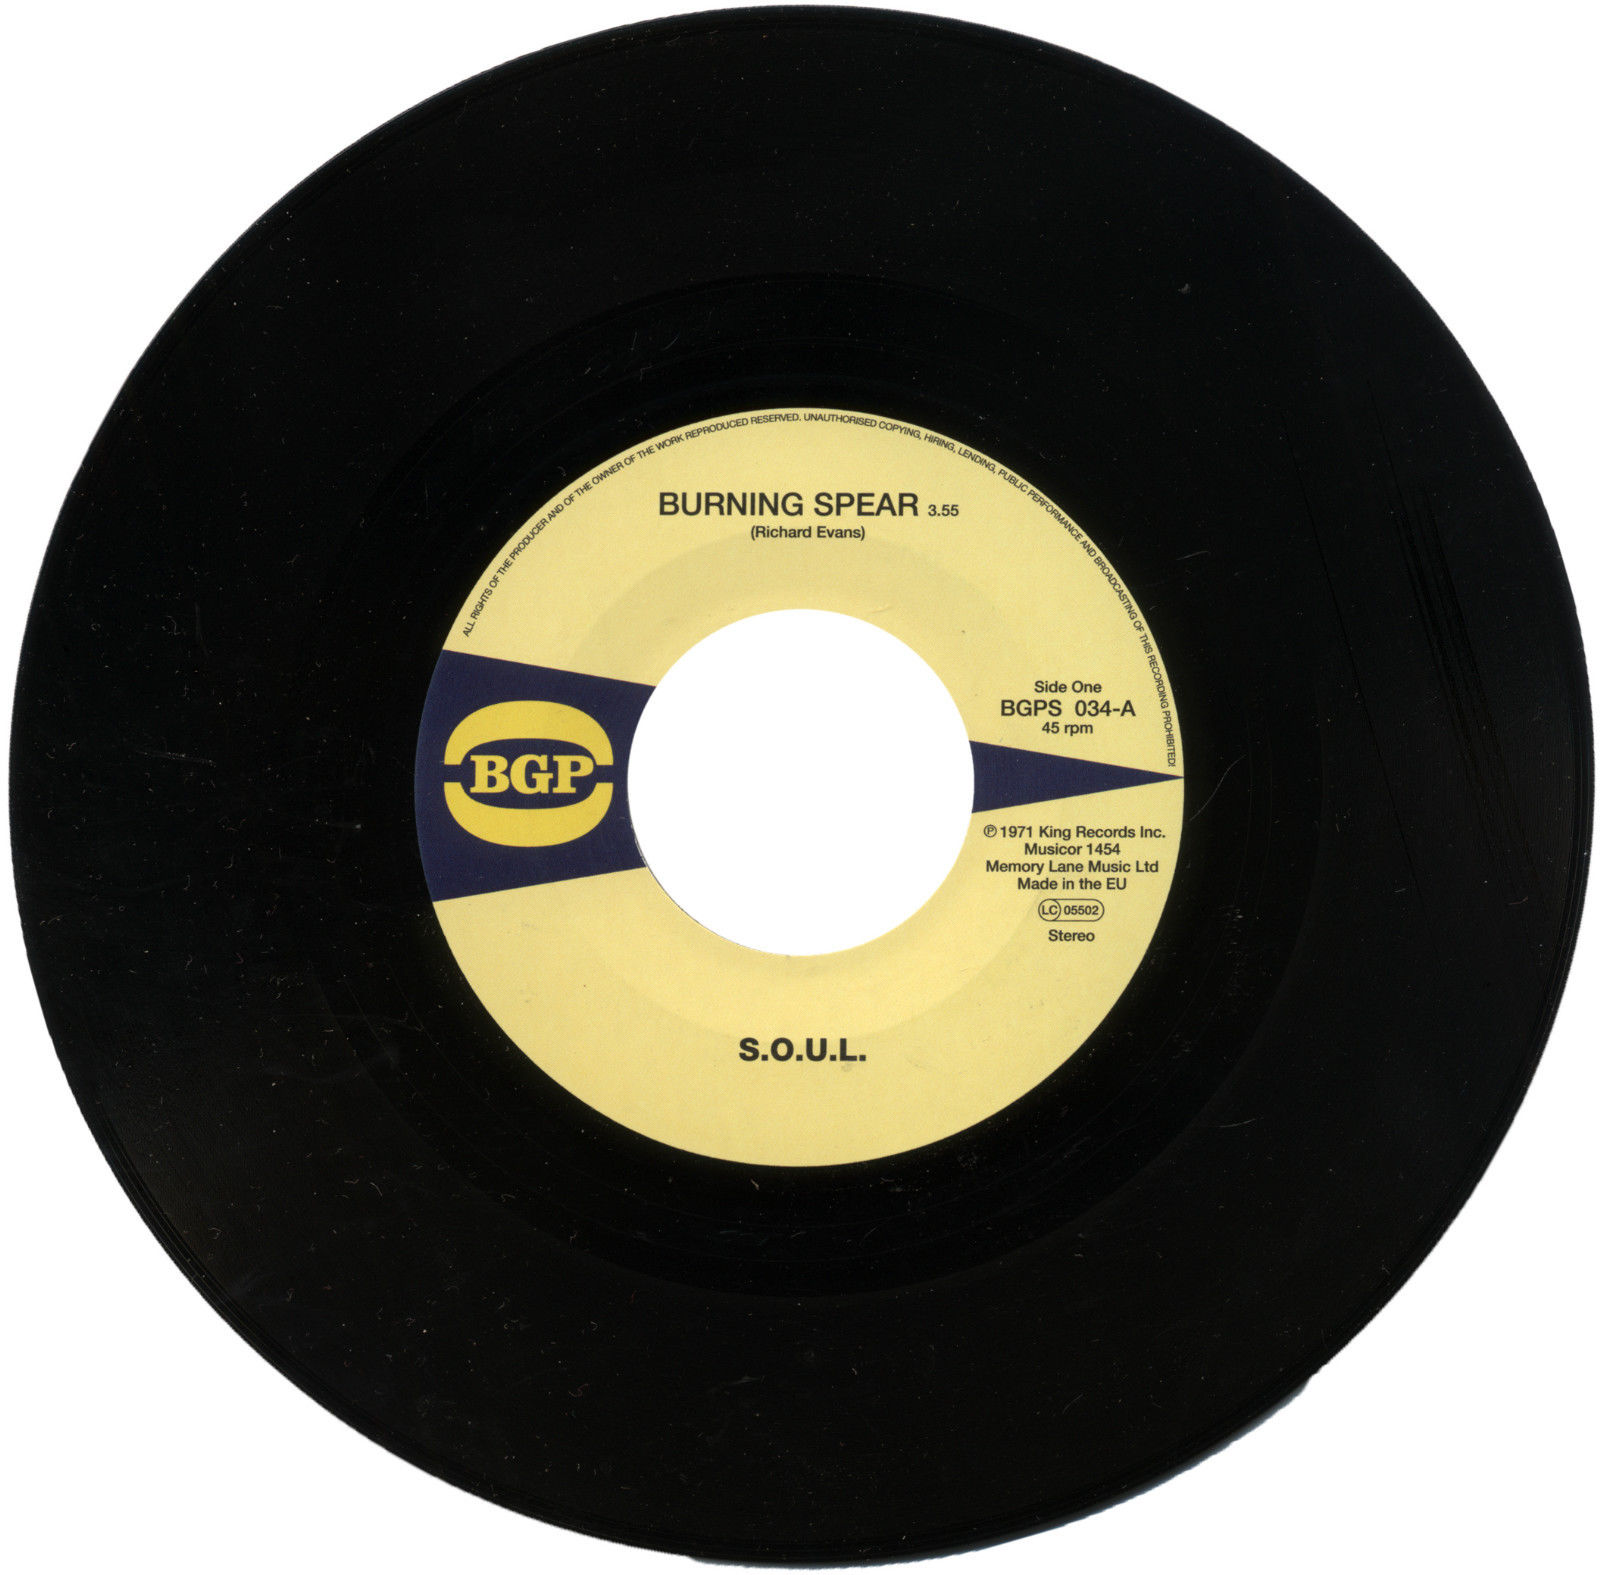 S.O.U.L – Burning Spear / Do What Ever You Want To Do 45 (BGP) 7″ Vinyl